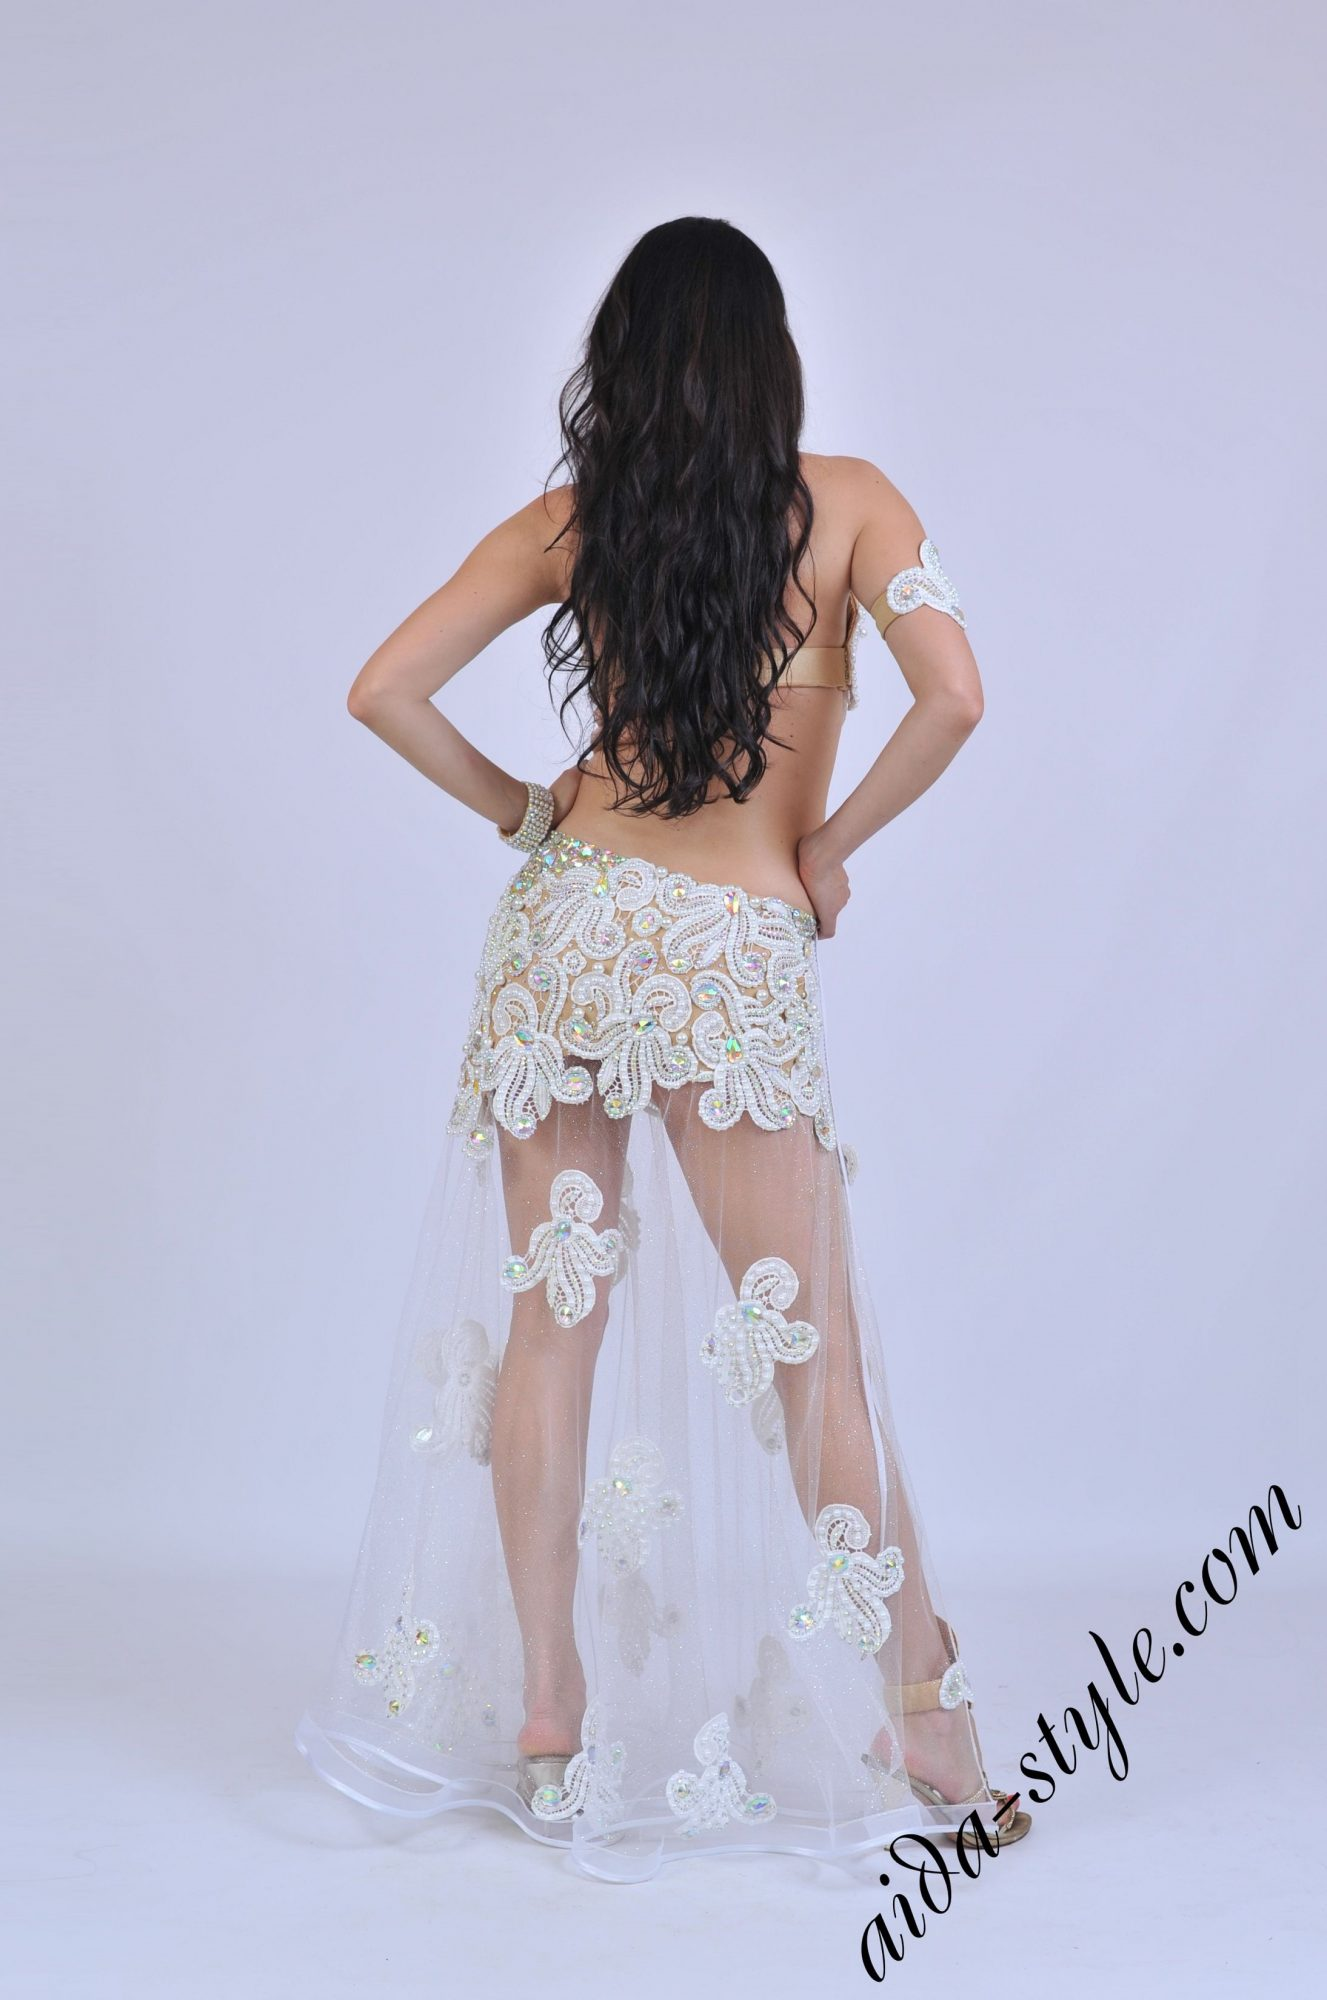 White belly dance costume with sexy skirt - back view